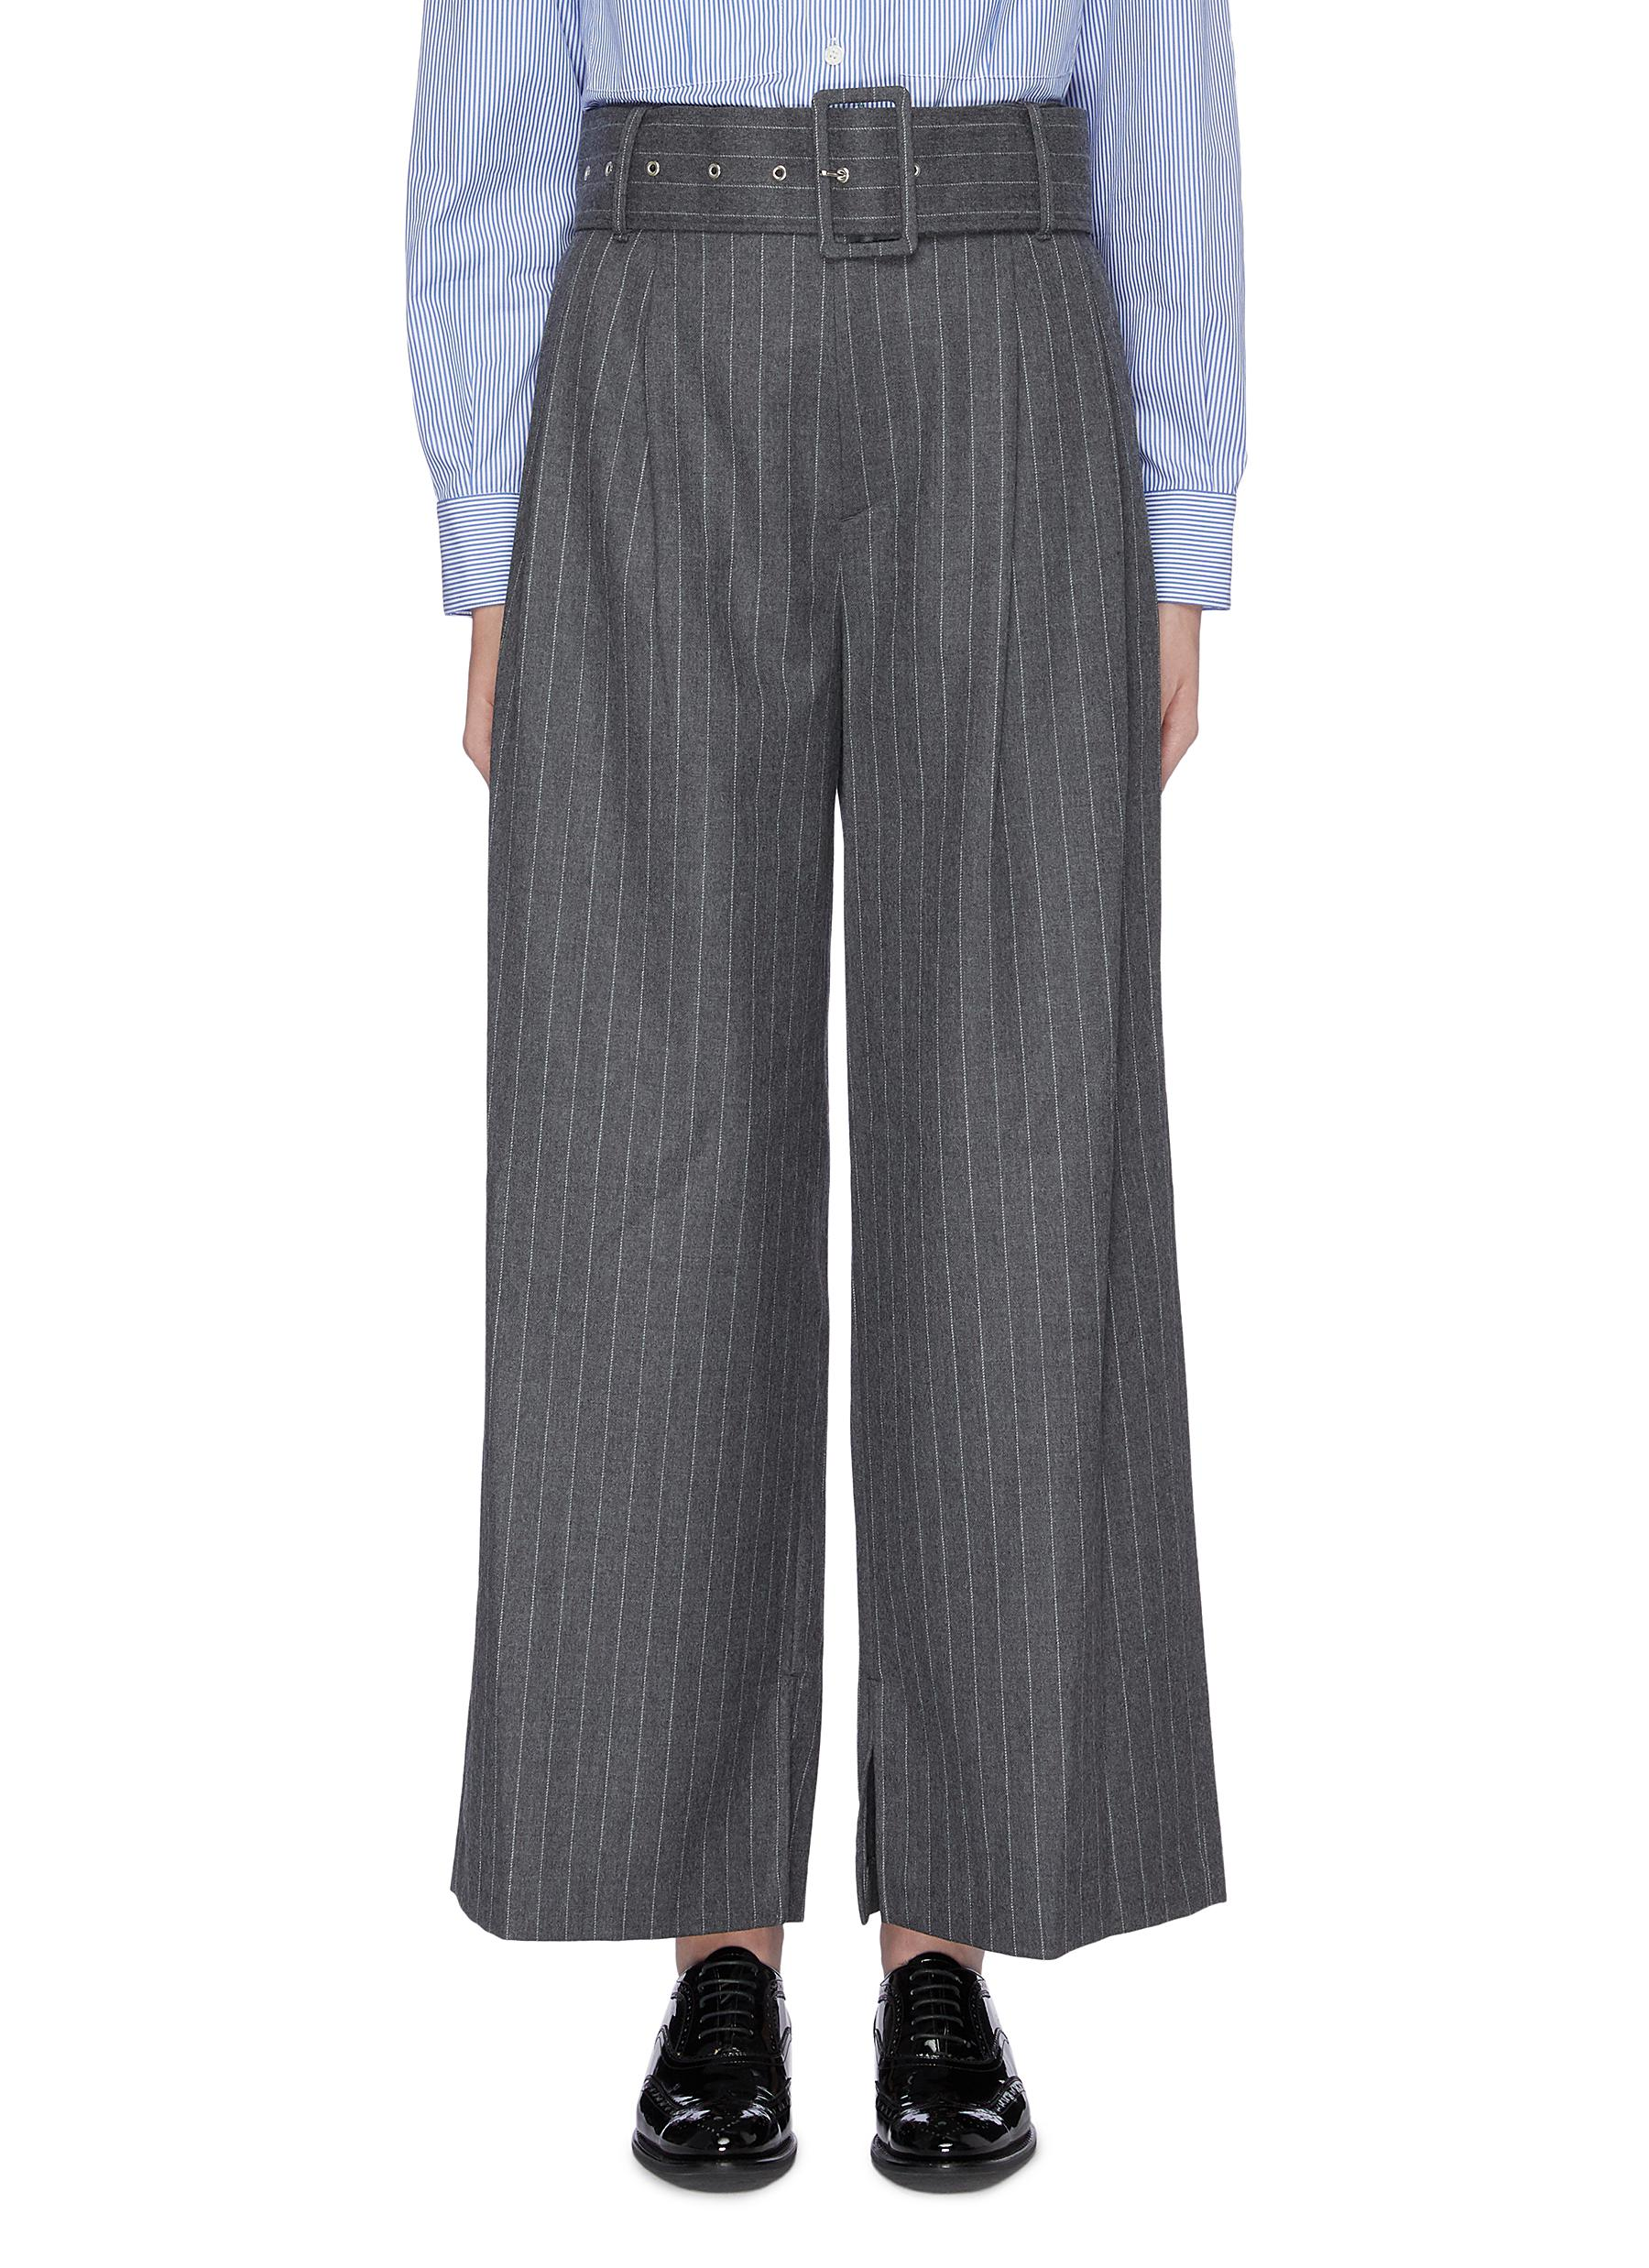 Belted pinstripe wide leg pants by The Keiji